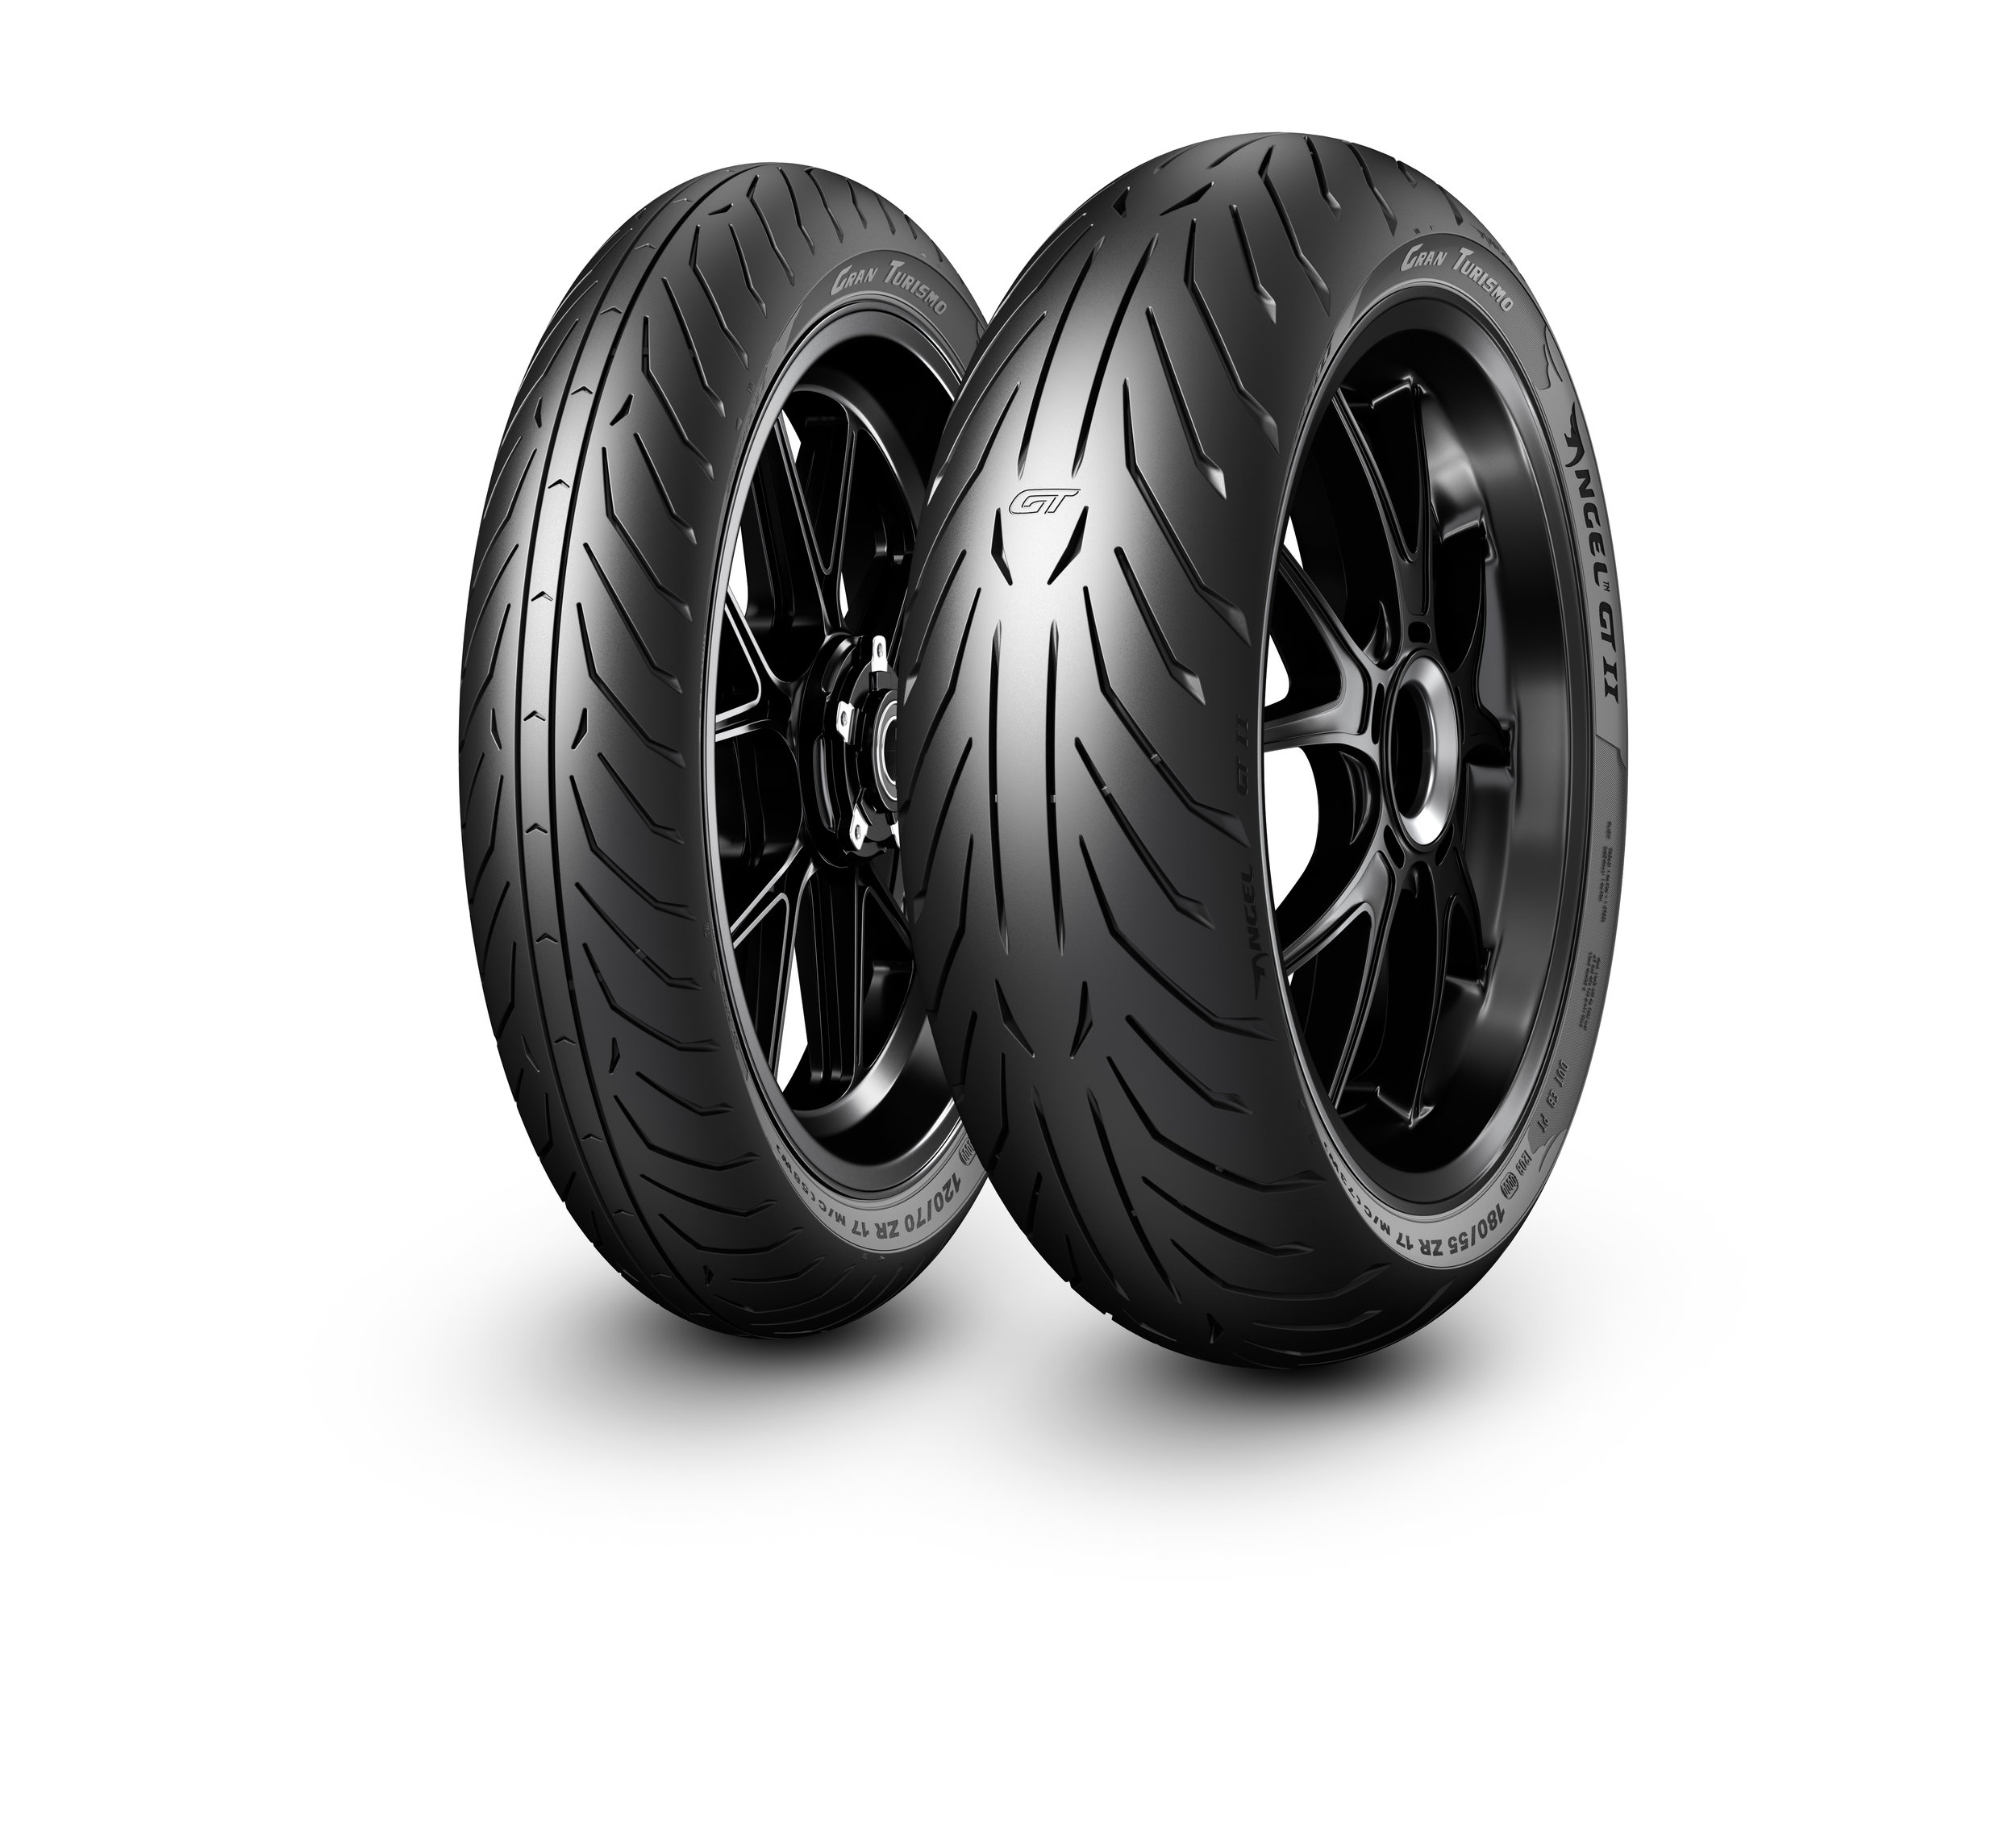 The new Pirelli Angel GT II sport touring tire is the successor of the highly regarded Angel GT.